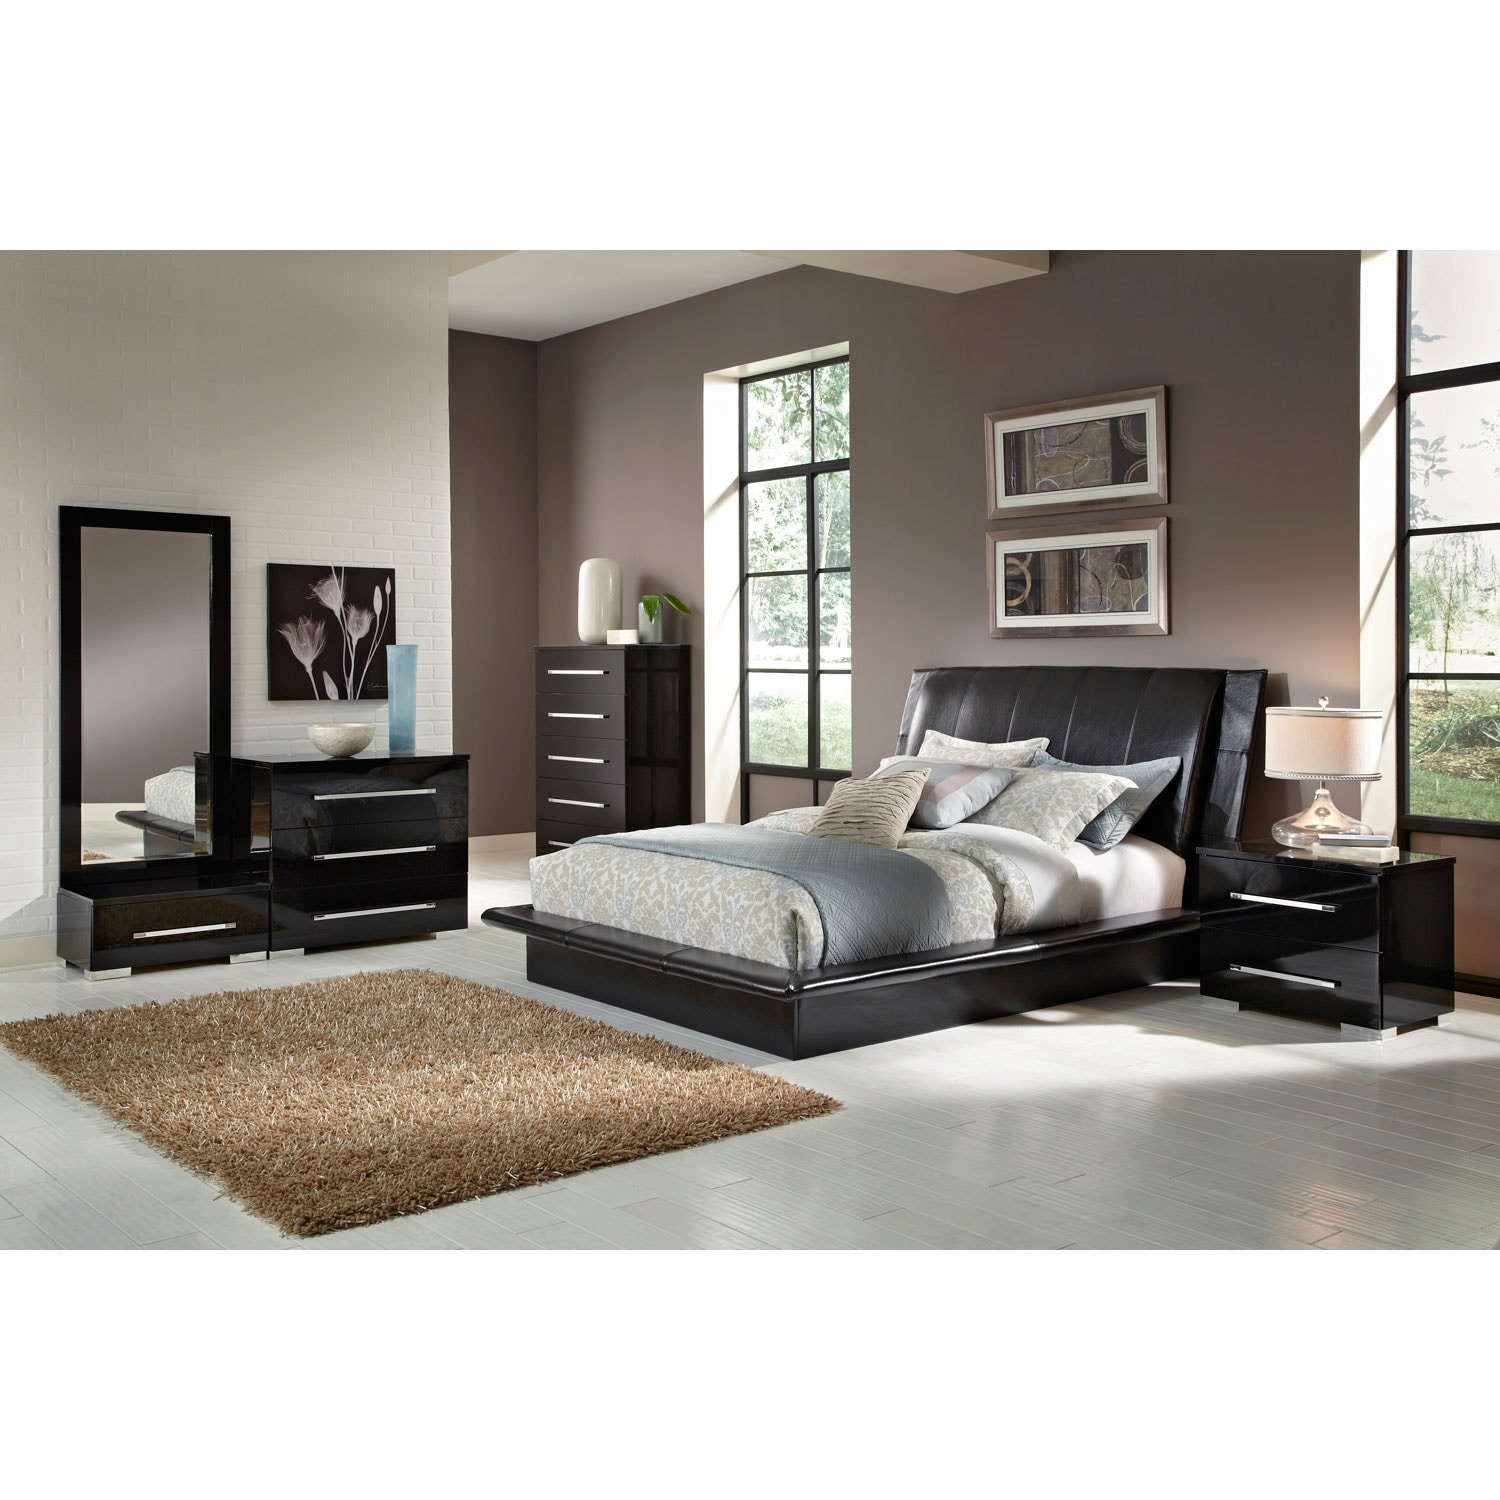 Dimora 7 piece queen upholstered bedroom set black - Black queen bedroom furniture set ...